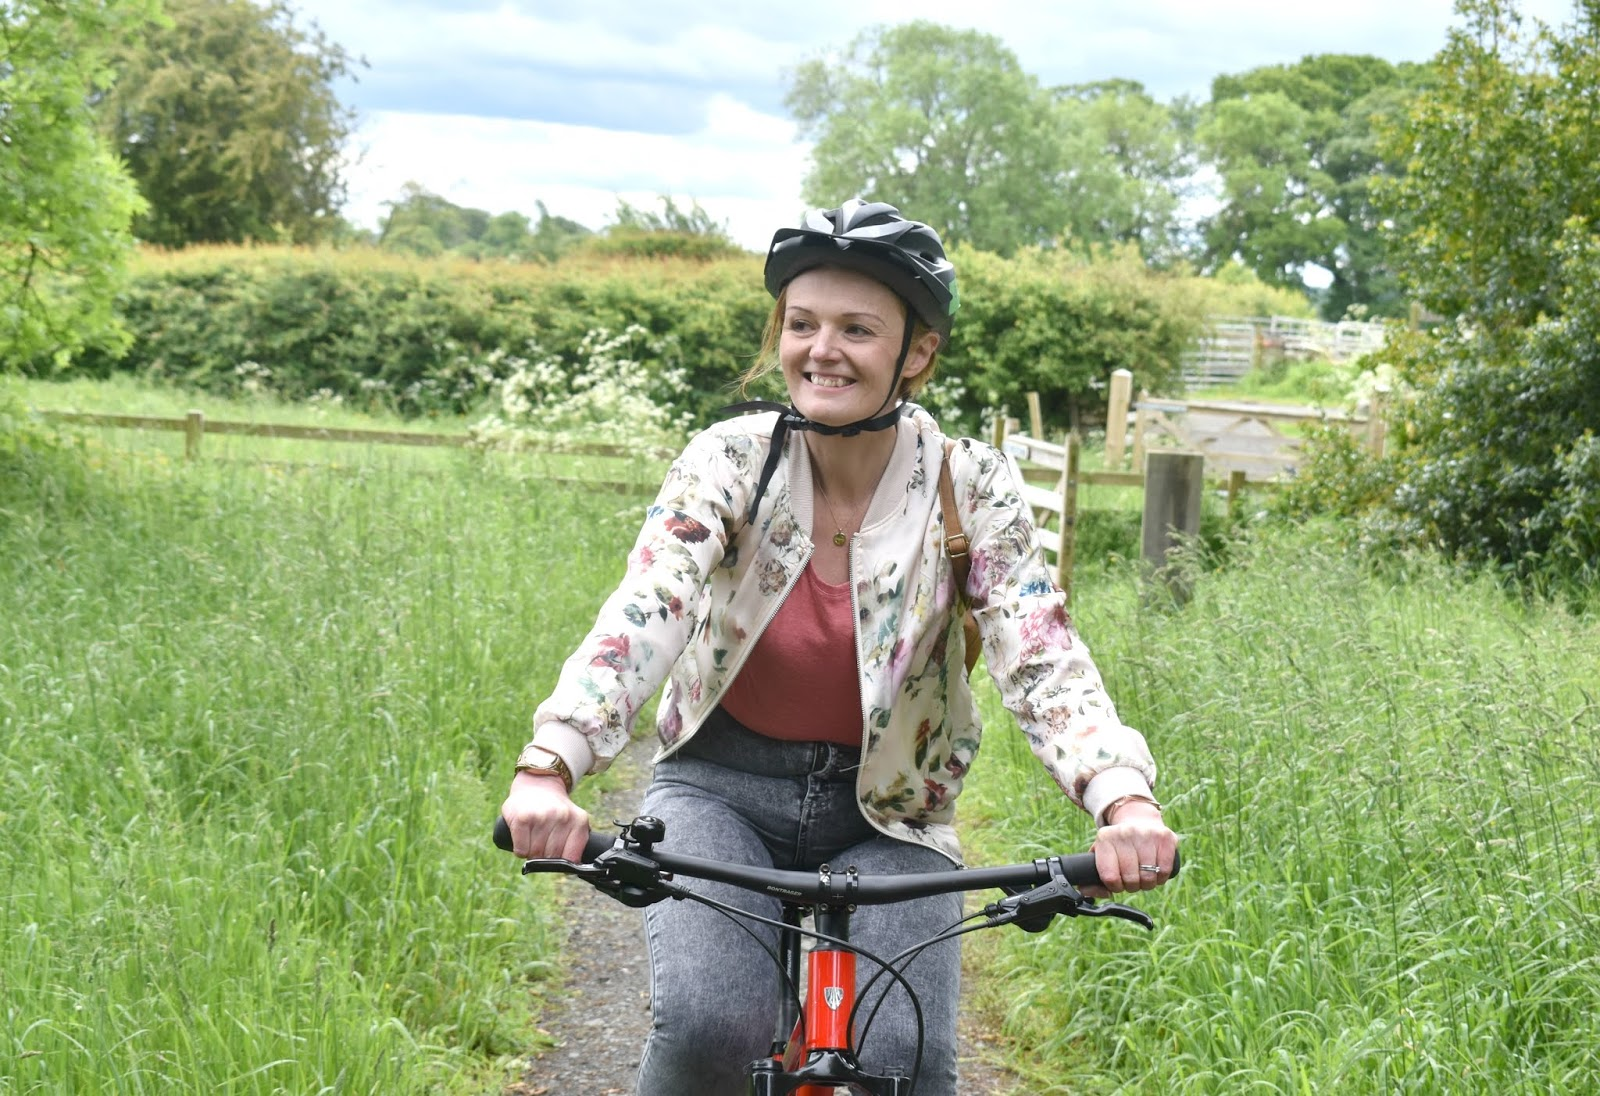 Bike Riding and Cycle Hire at National Trust Wallington, Northumberland